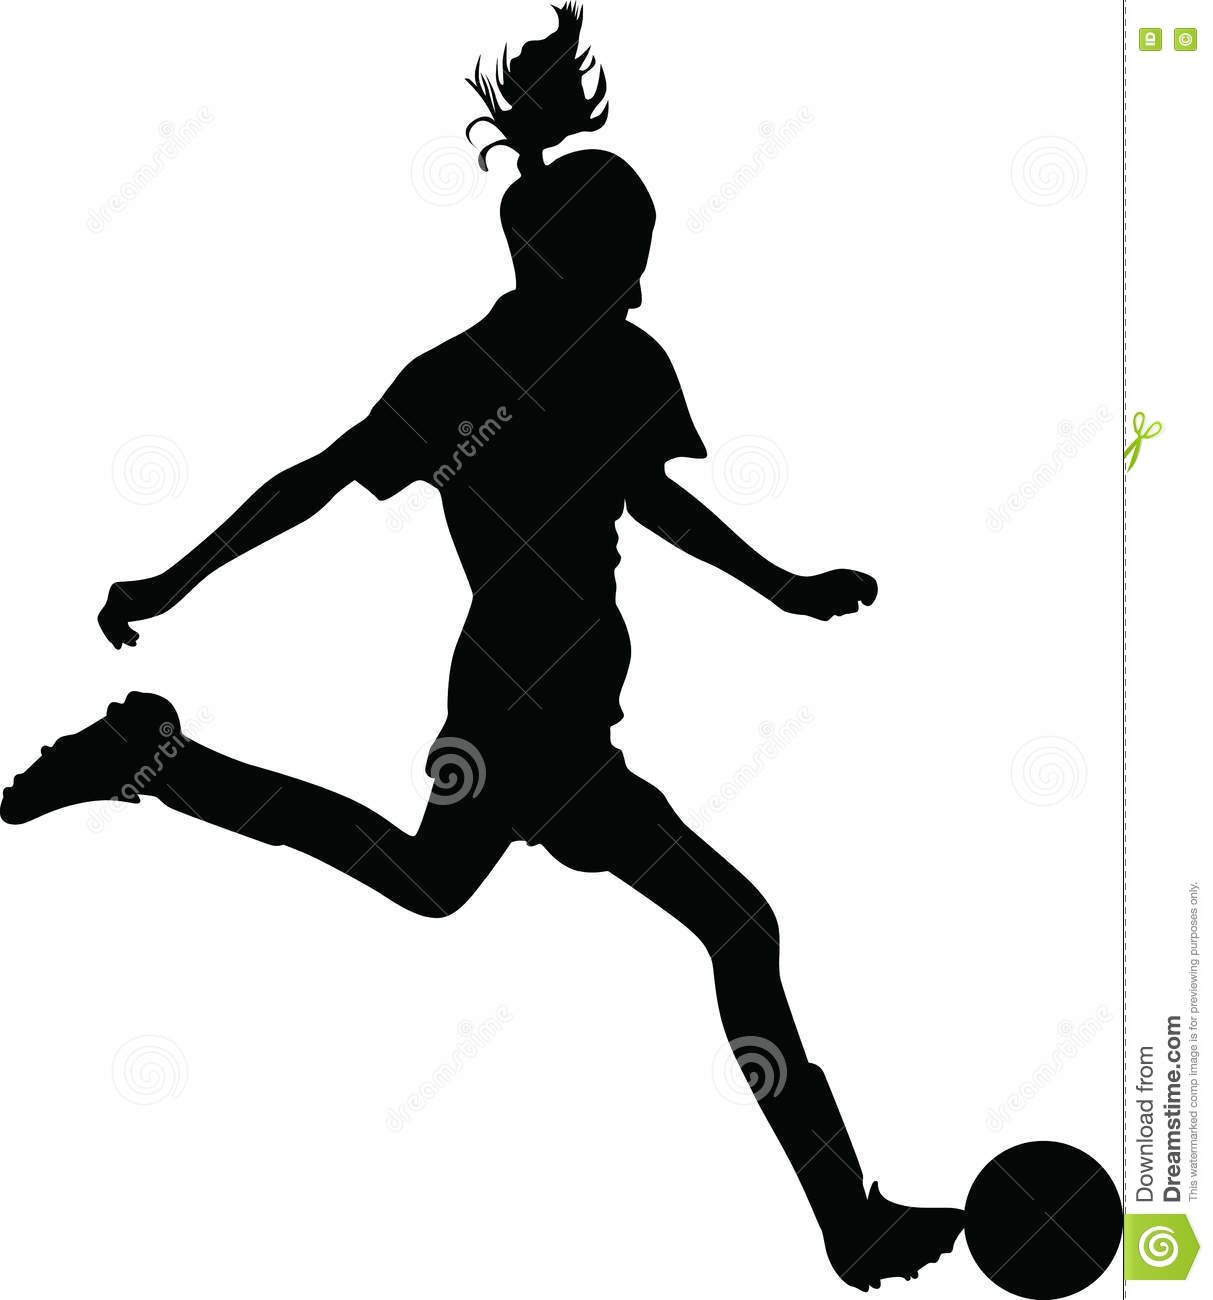 Woman Soccer Player Download From Over 62 Million High Quality Stock Photos Images Vectors Sign Up For Free Soccer Silhouette Womens Soccer Soccer Players